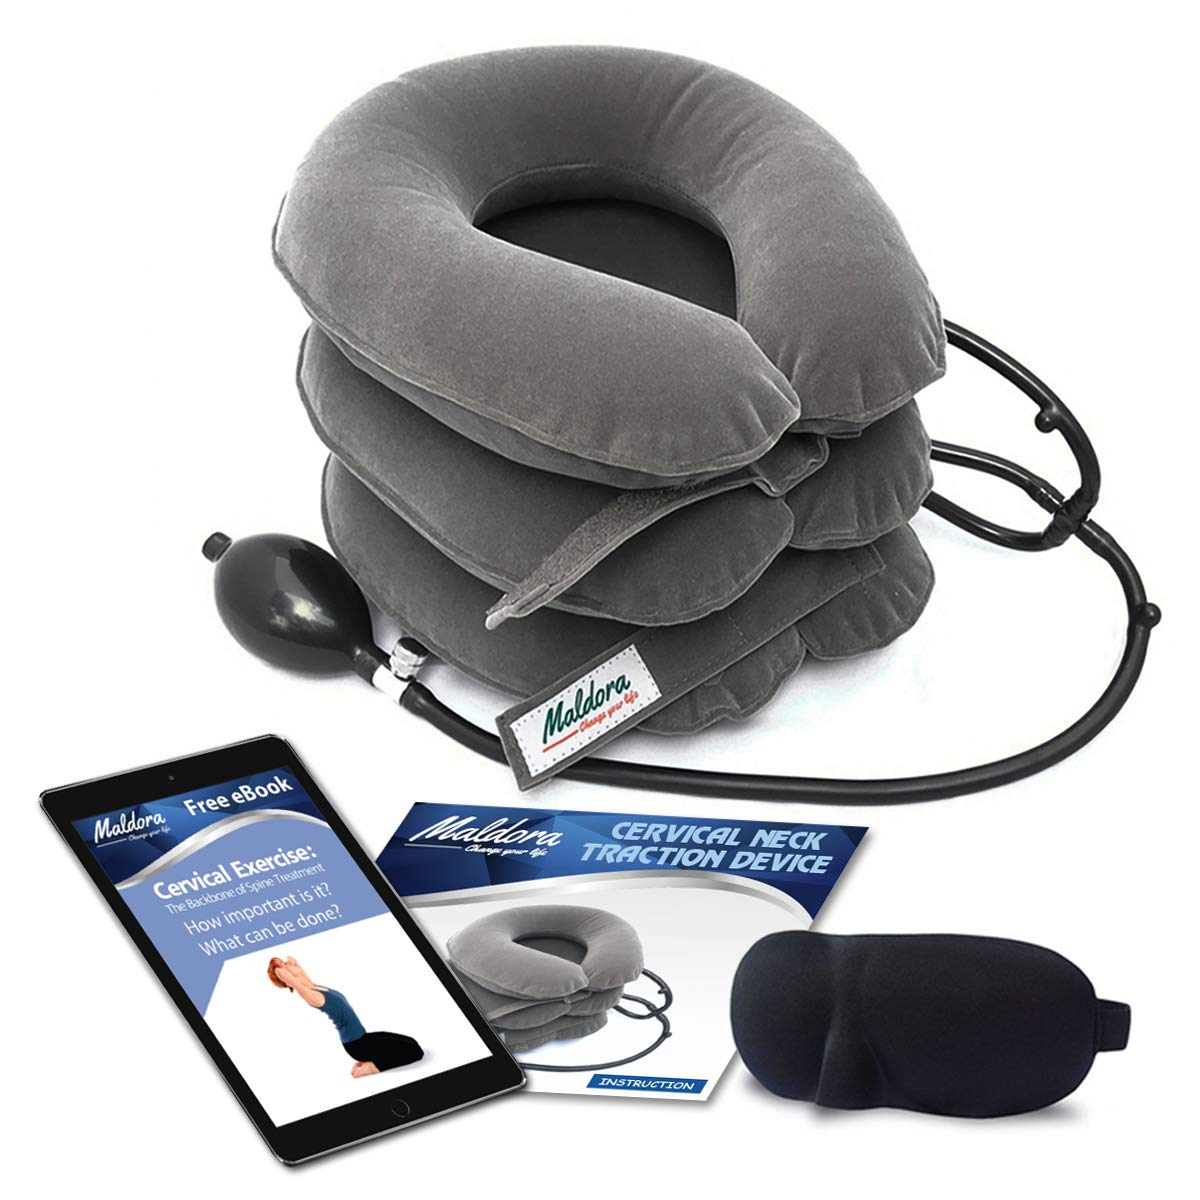 Maldora Cervical Neck Traction Device FDA Registered ✮ Inflatable Pillow Effective and Instant Relief for Chronic Neck & Shoulder Pain with Adjustable Size (Grey) ✮ Bonus Sleep Mask